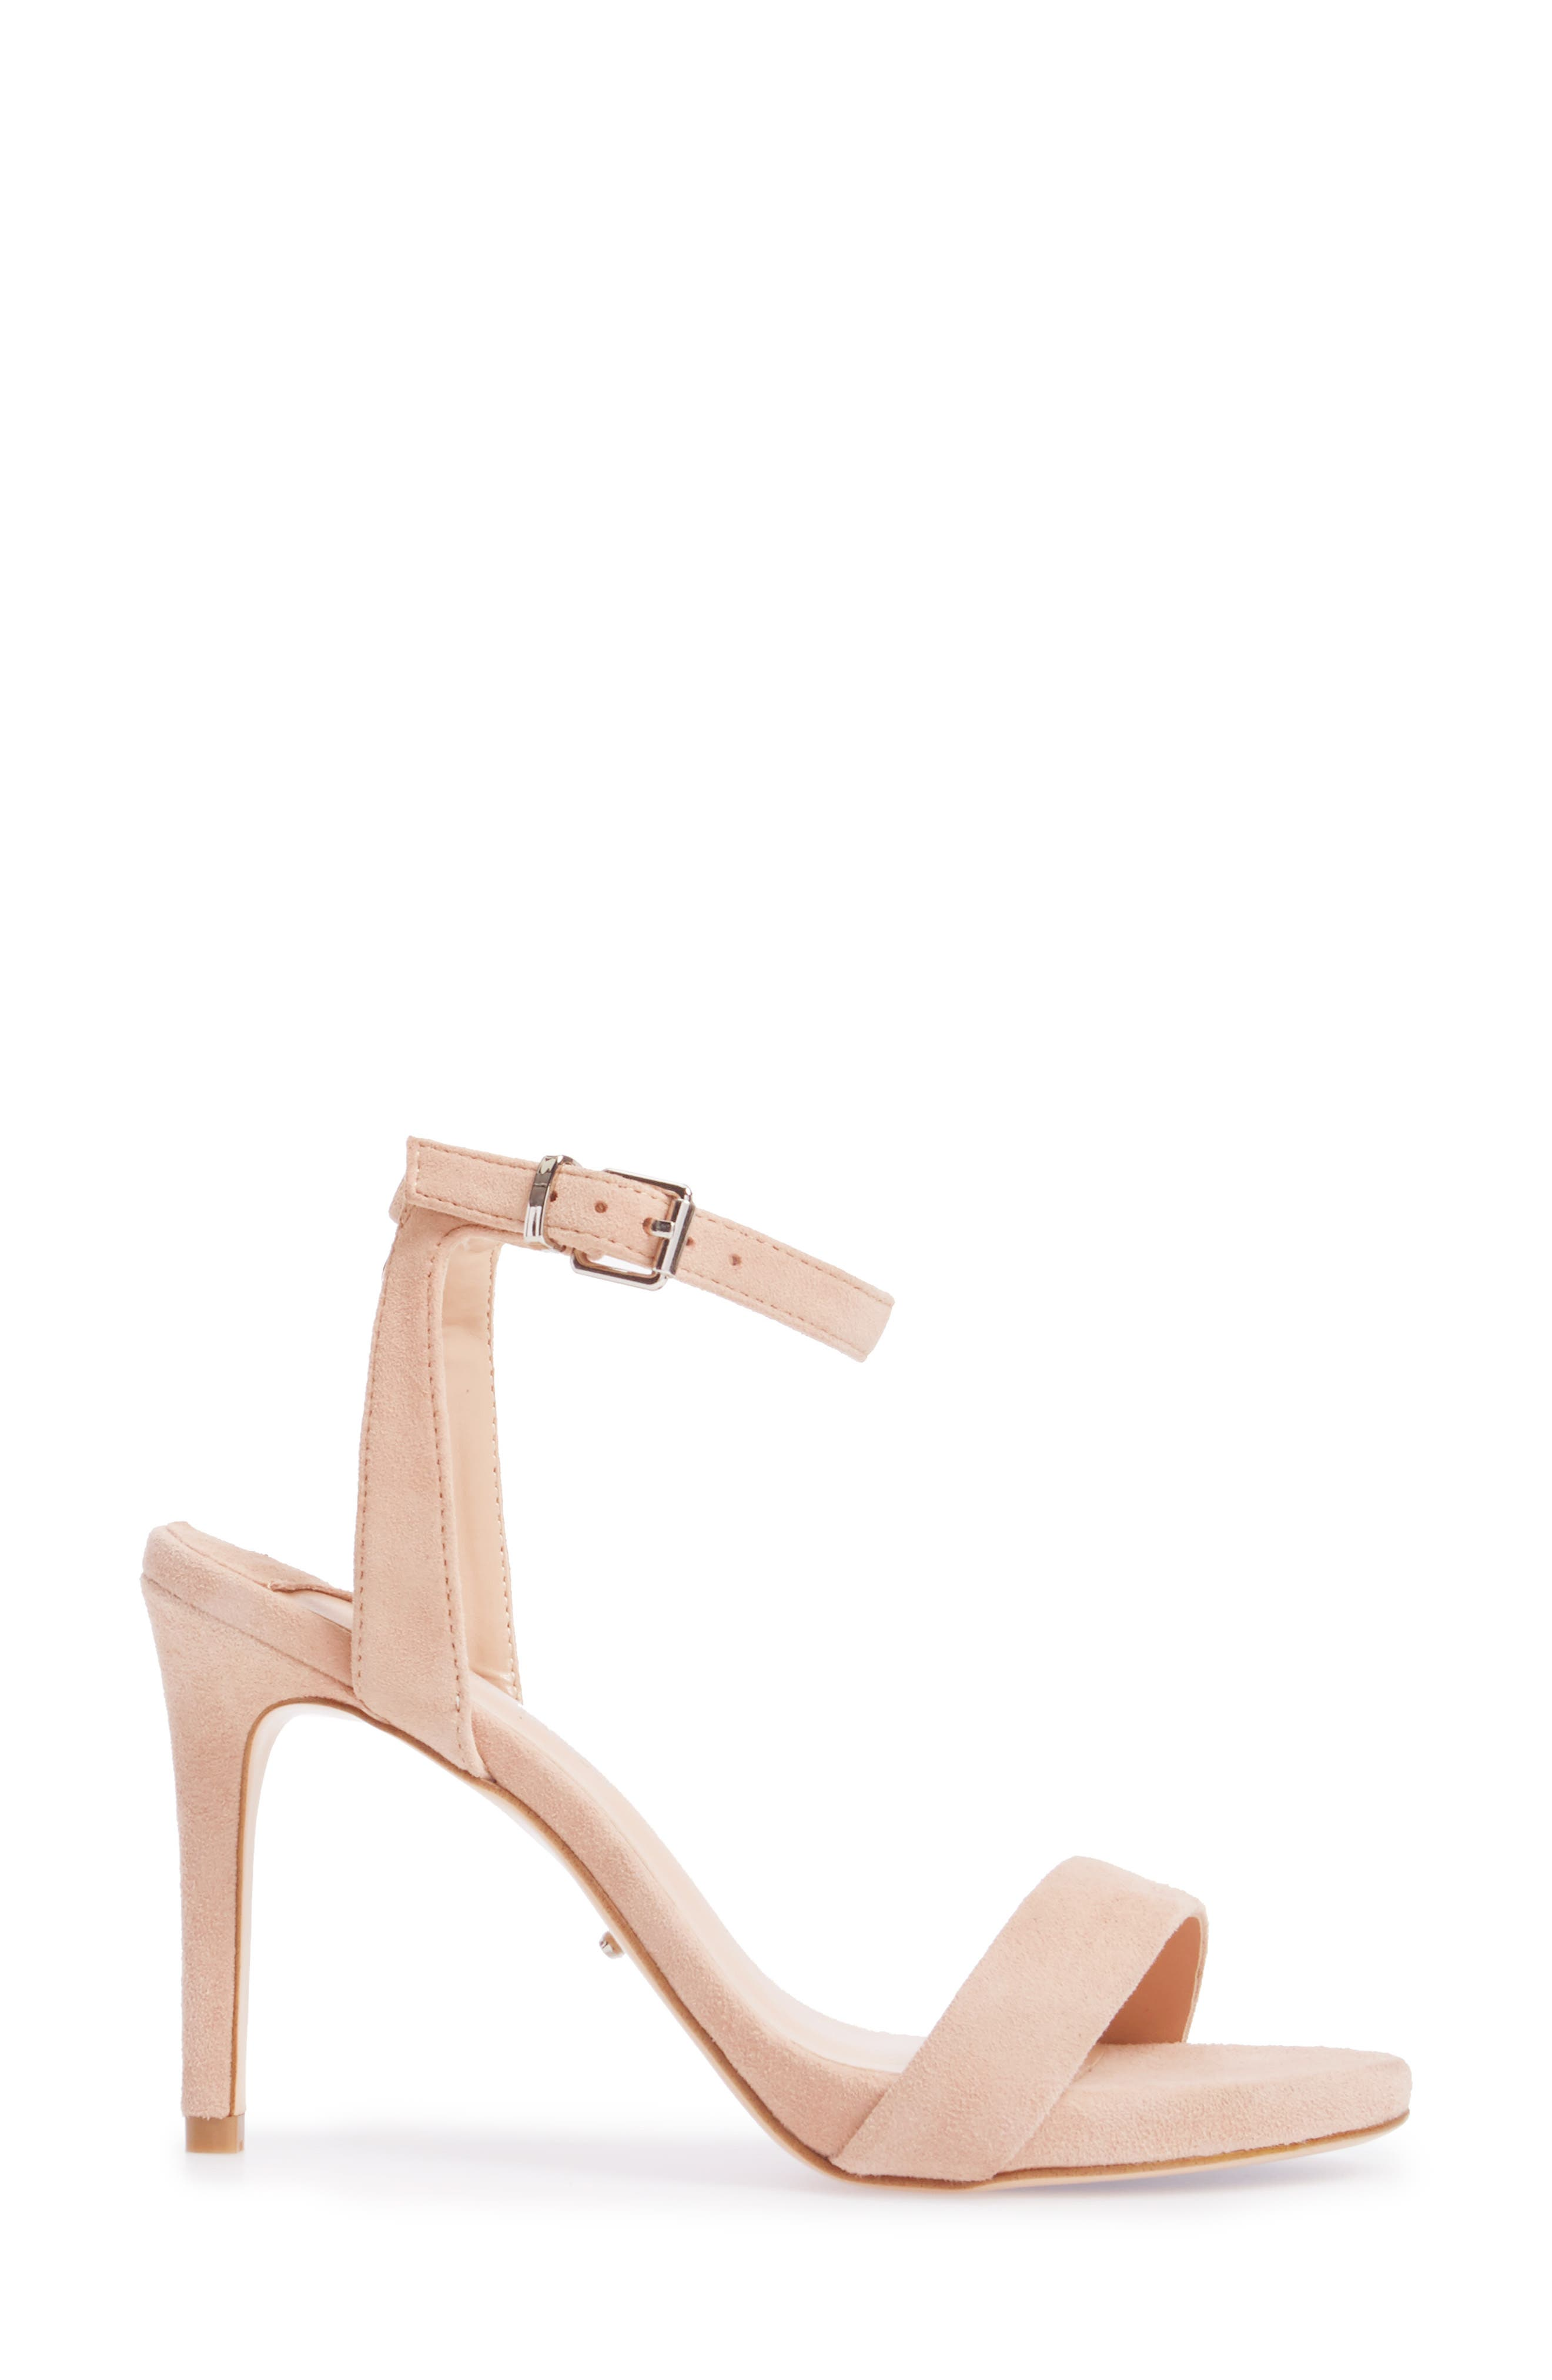 Char Ankle Cuff Sandal,                             Alternate thumbnail 3, color,                             Blush Suede